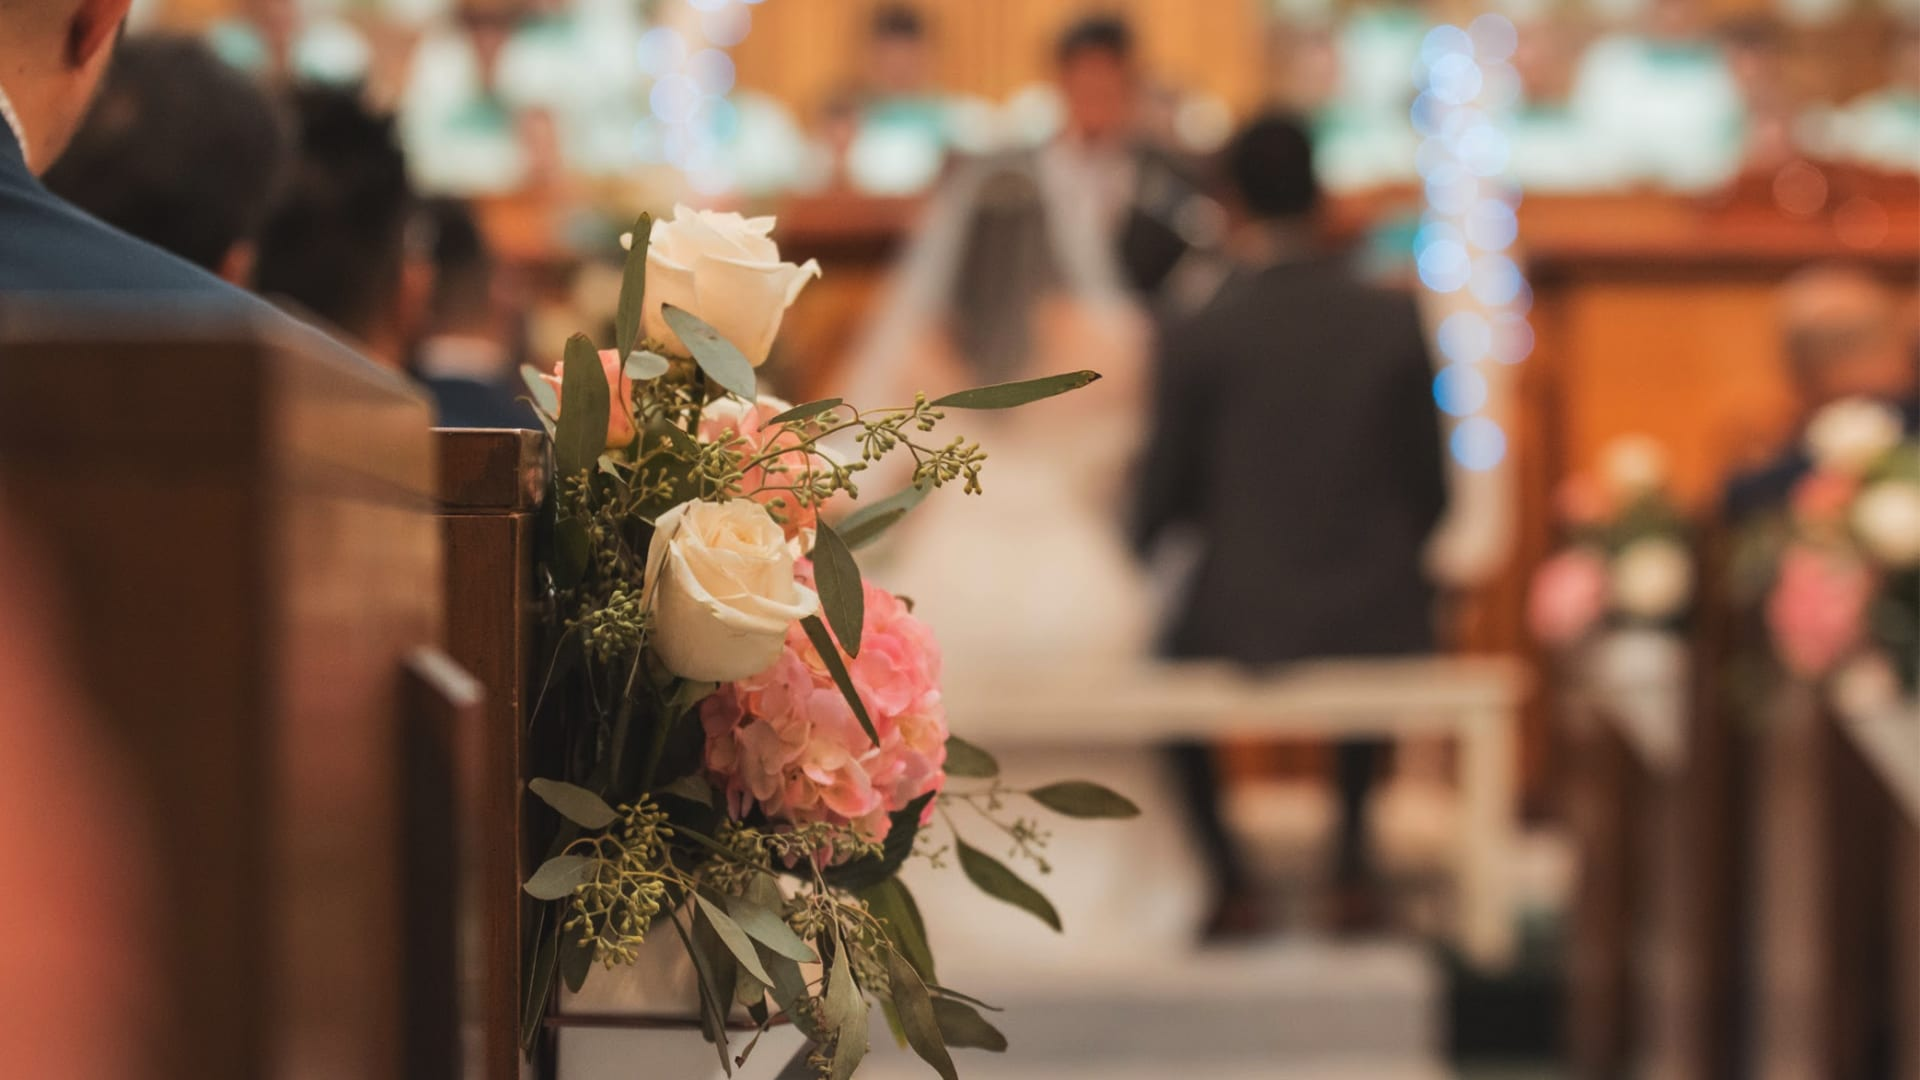 Wedding flowers and church pews